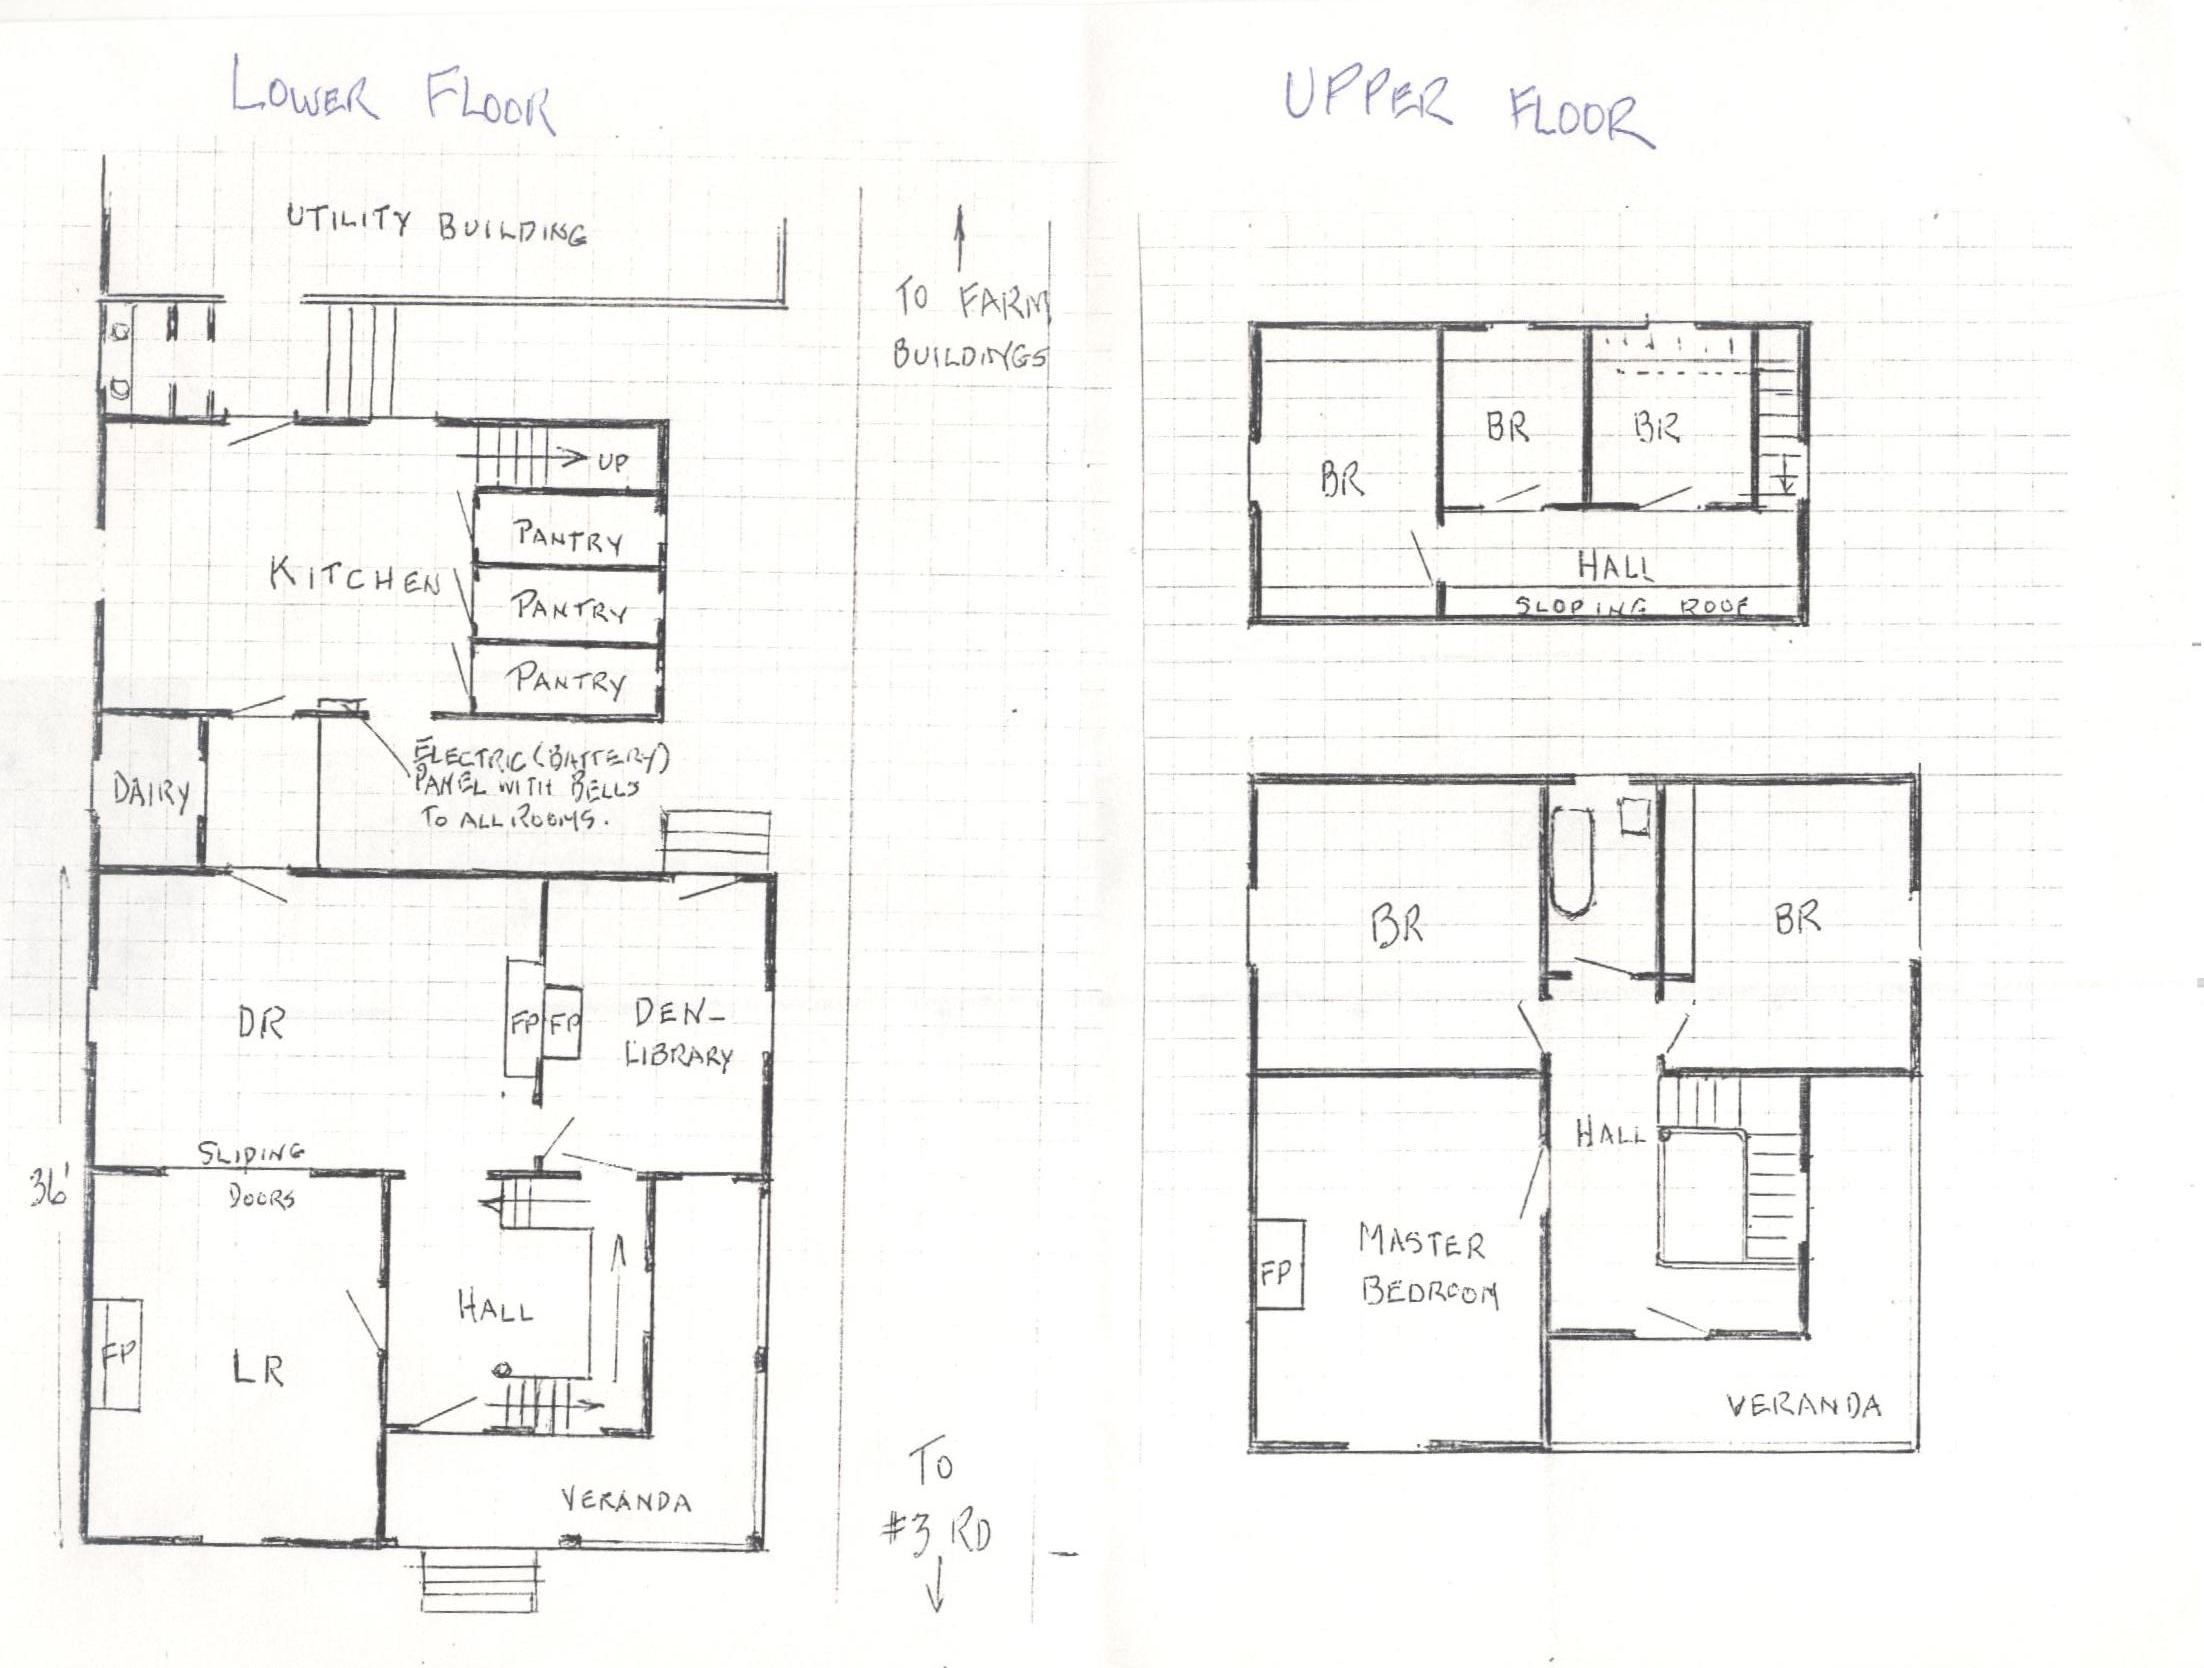 servant quarter house plan servants quarters house plans ForServants Quarters House Plans